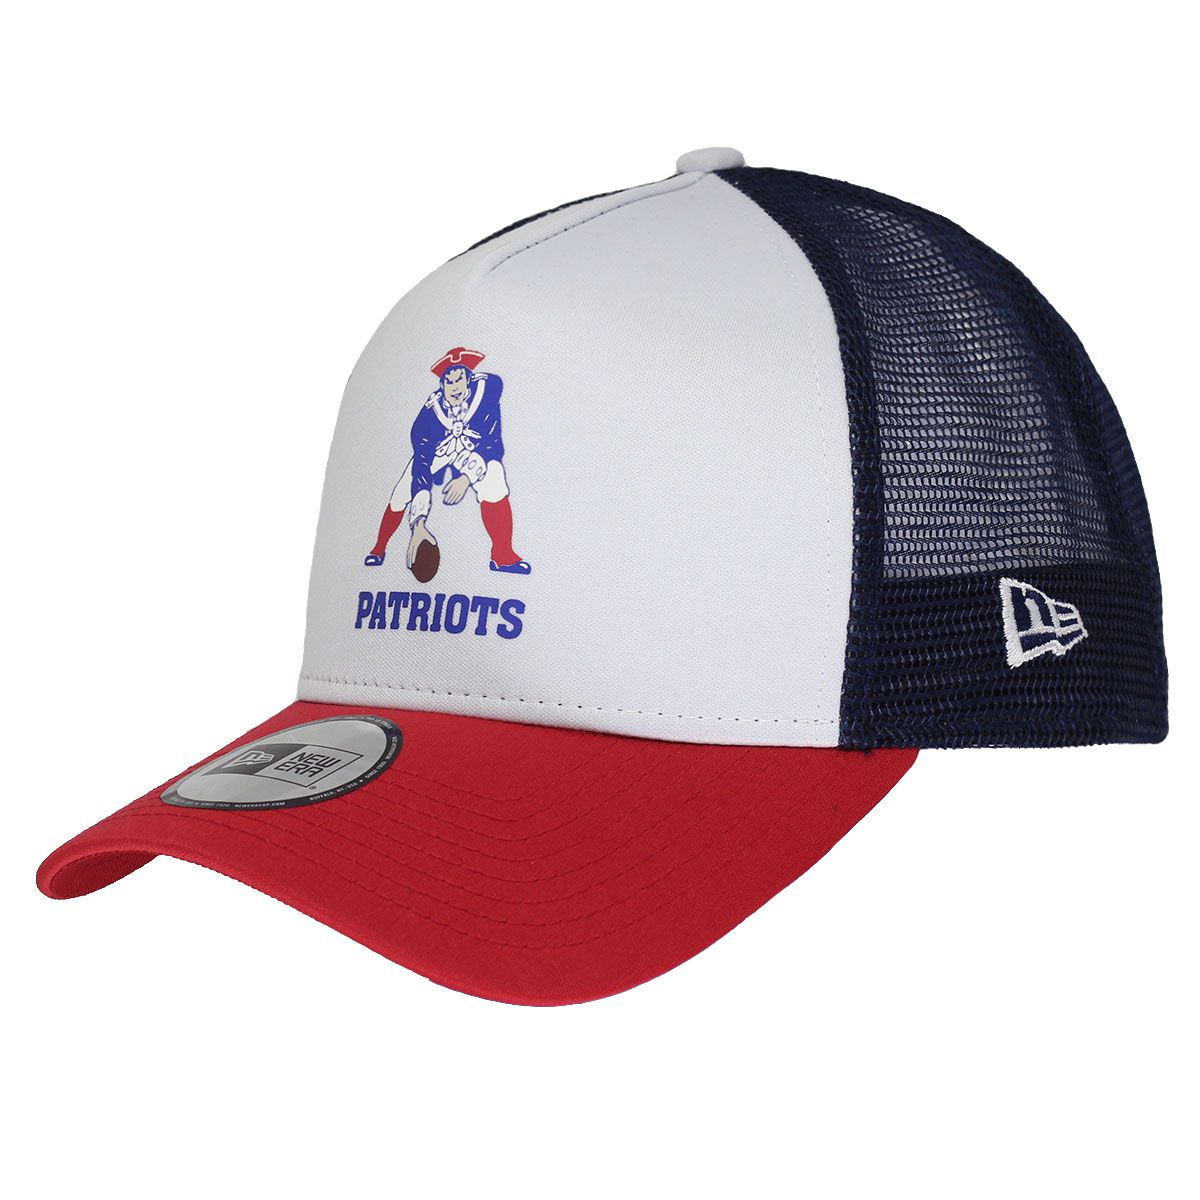 Boné New Era Aba Curva 940 SN NFL Patriots Trucker Throwback